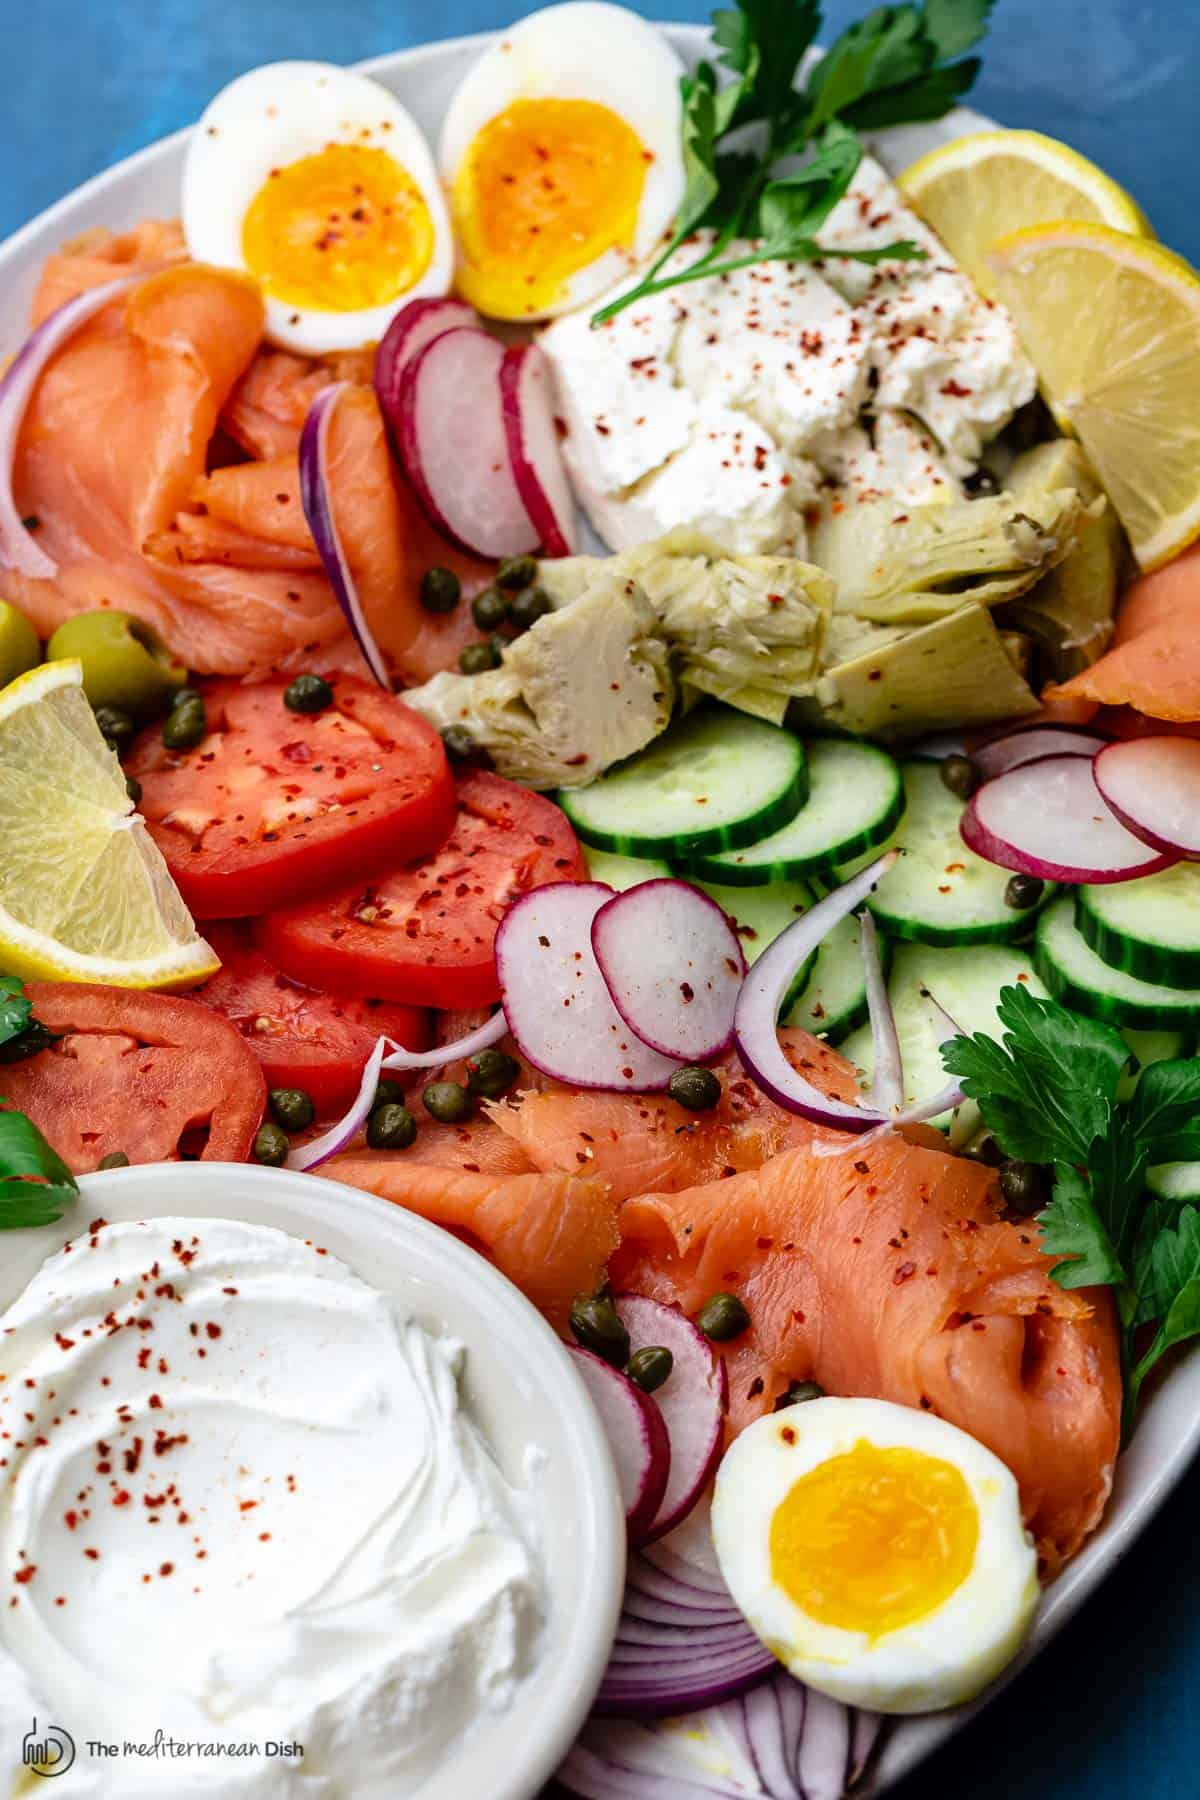 smoked salmon, fresh veggies, labneh cheese and eggs on a platter